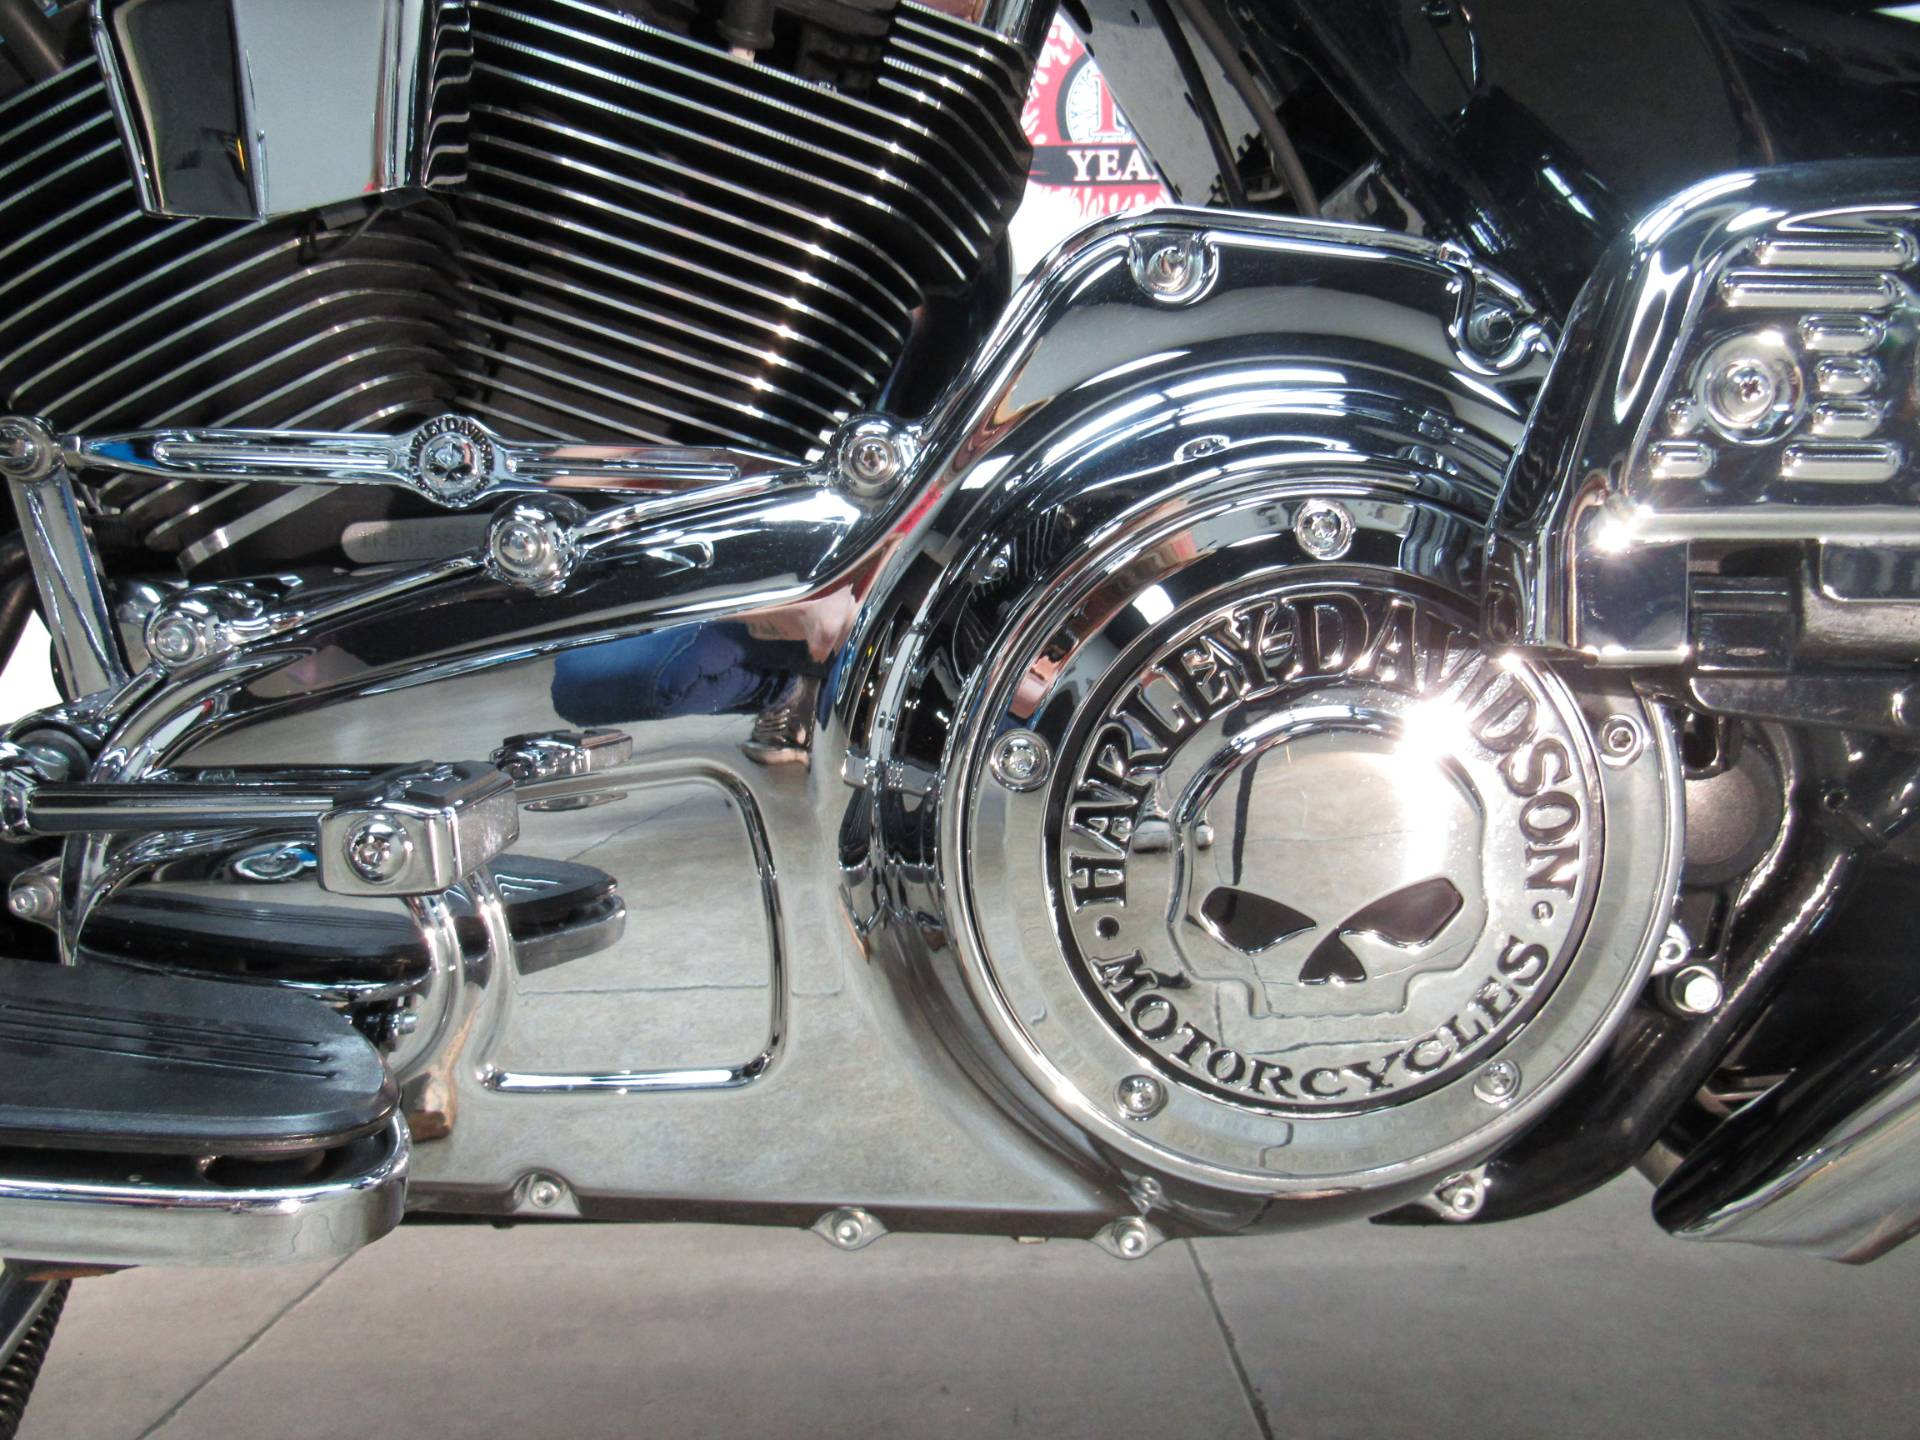 2012 Harley-Davidson Street Glide® in Temecula, California - Photo 27